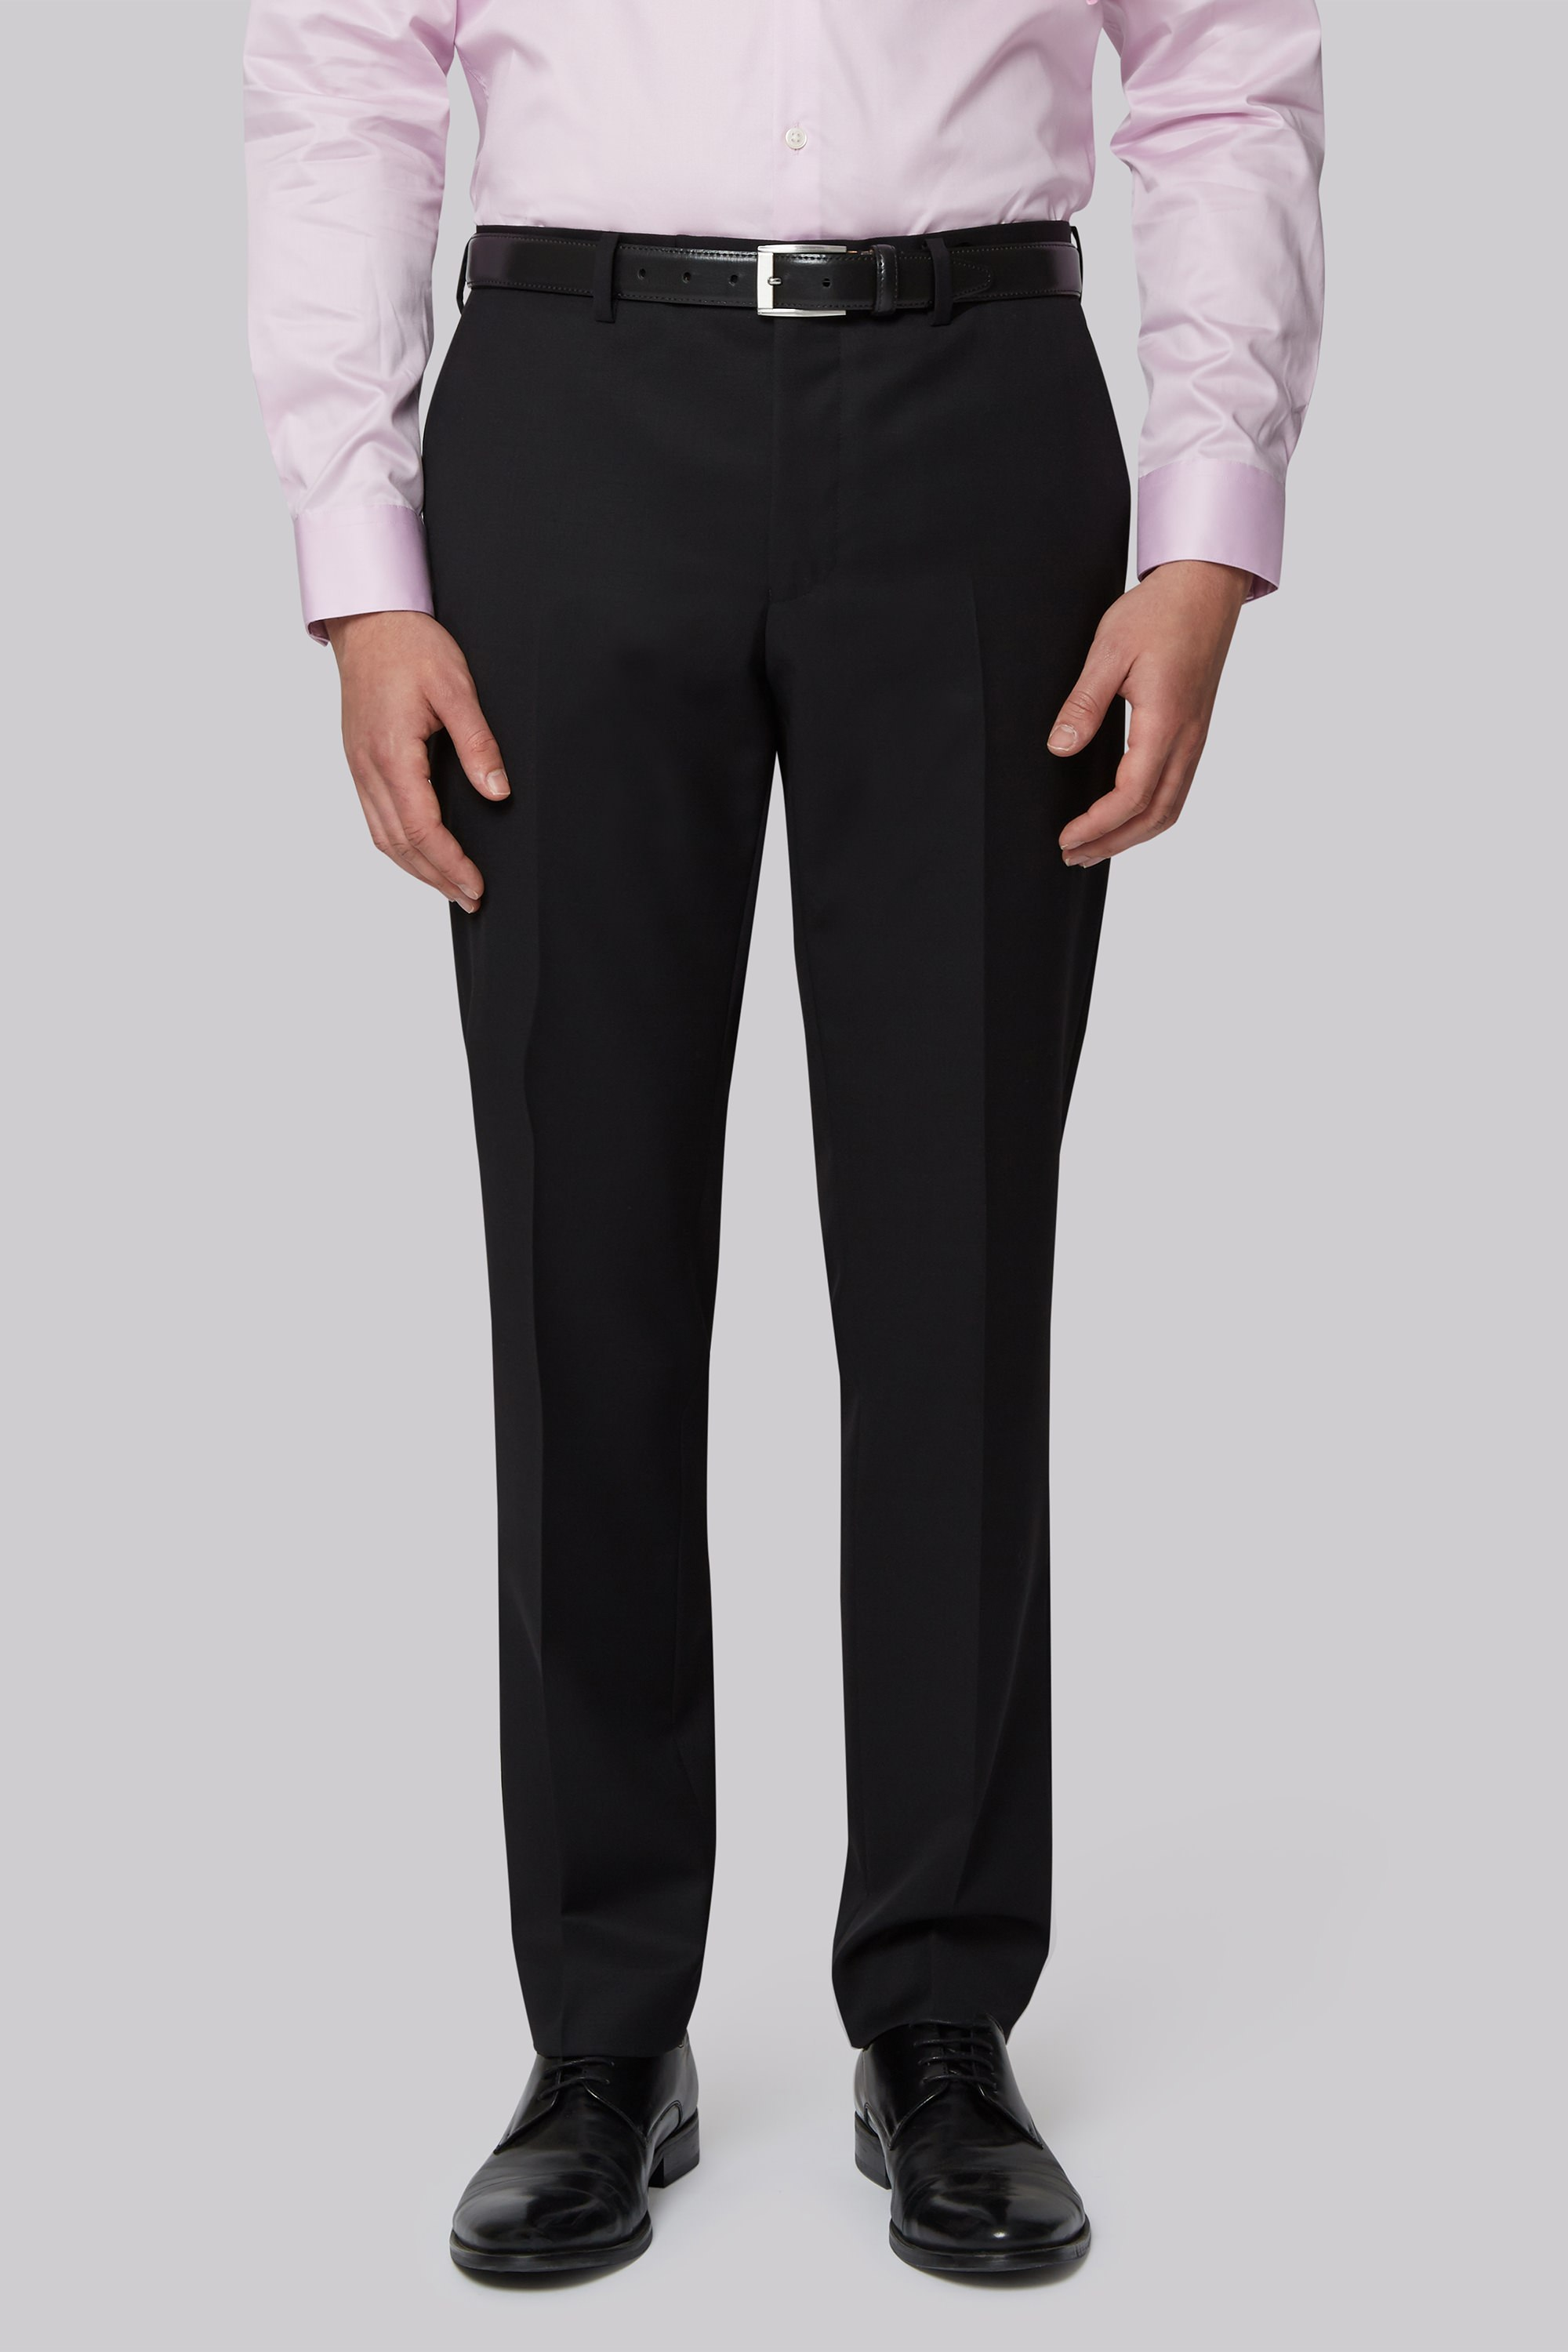 Shop black fitted pants at Neiman Marcus, where you will find free shipping on the latest in fashion from top designers.